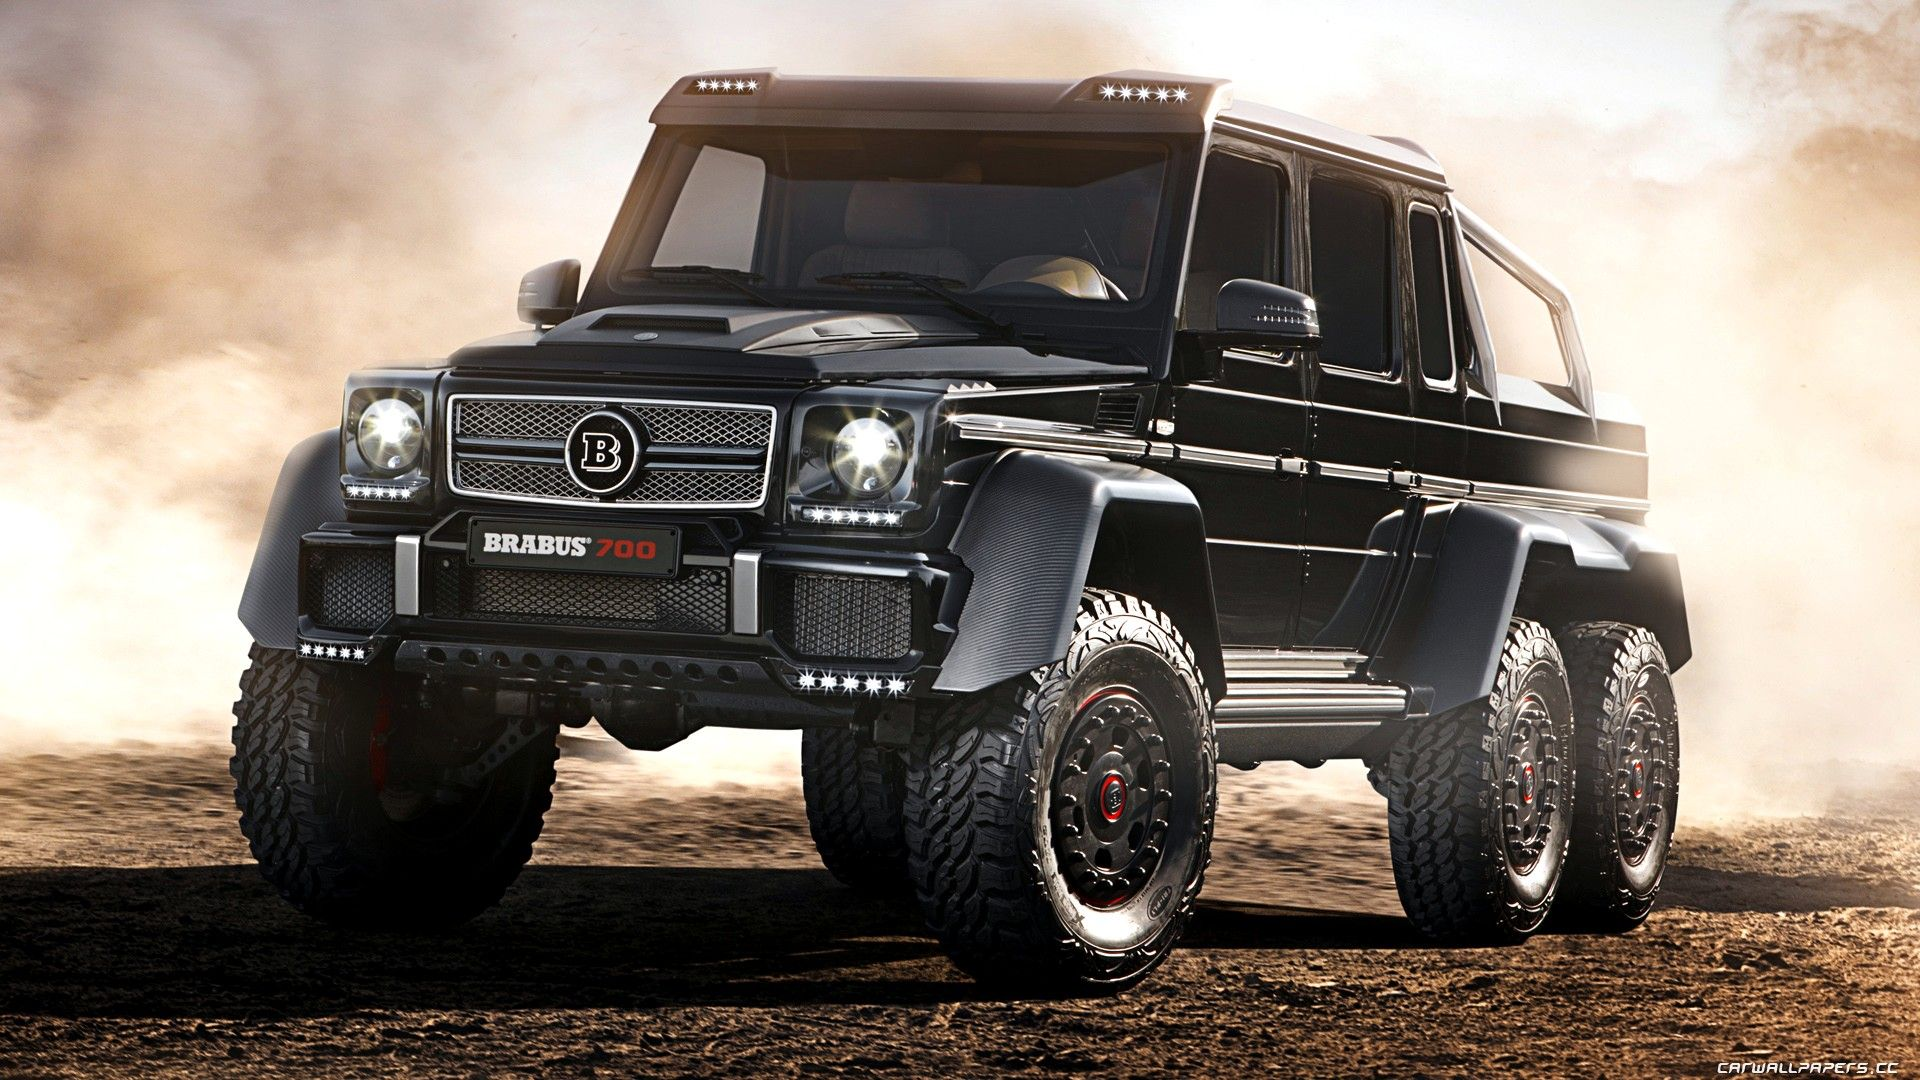 Mercedes Benz G63 Amg 6x6 Wallpapers Hd Download With Images